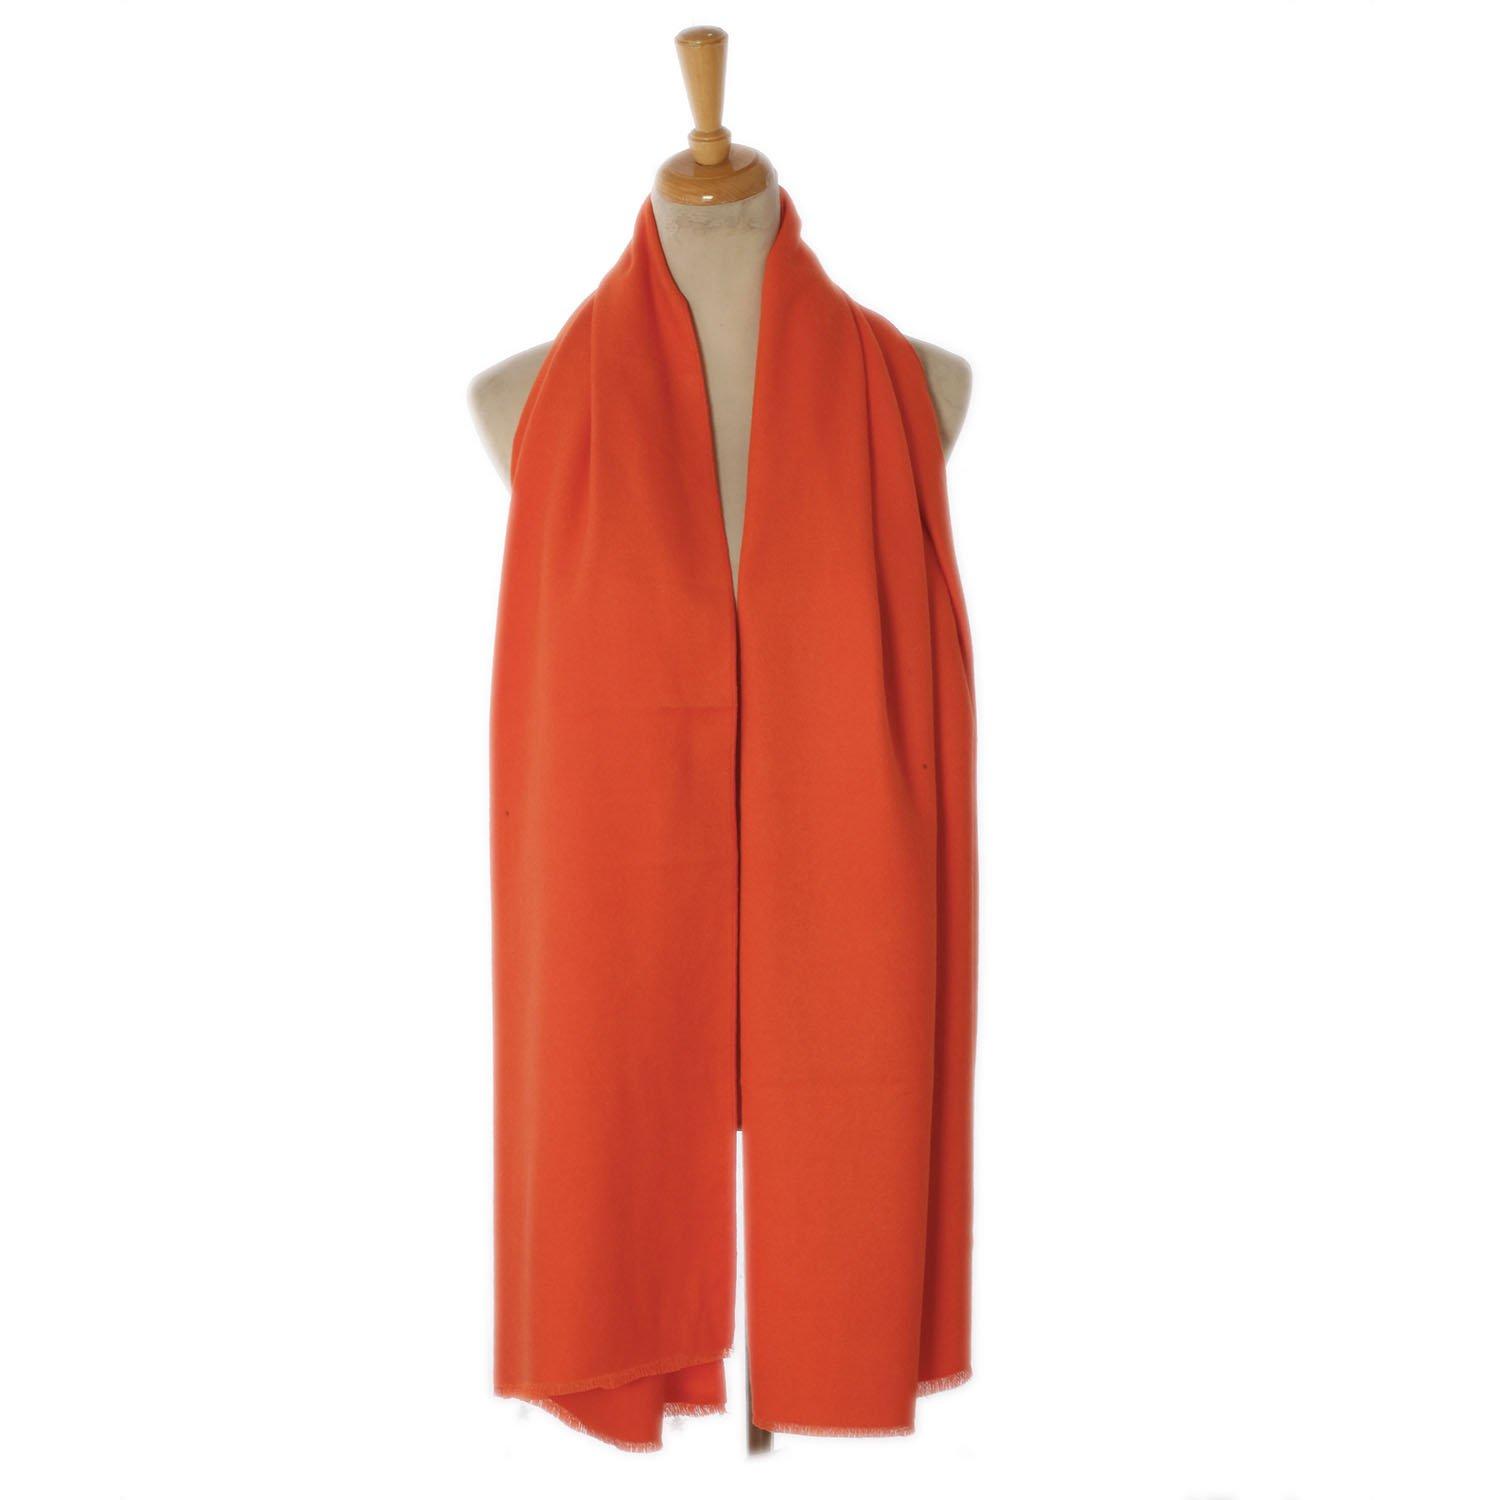 Shawl Wrap Solid Color Smooth Gentle Long For Cold Weather Girls (Orange)